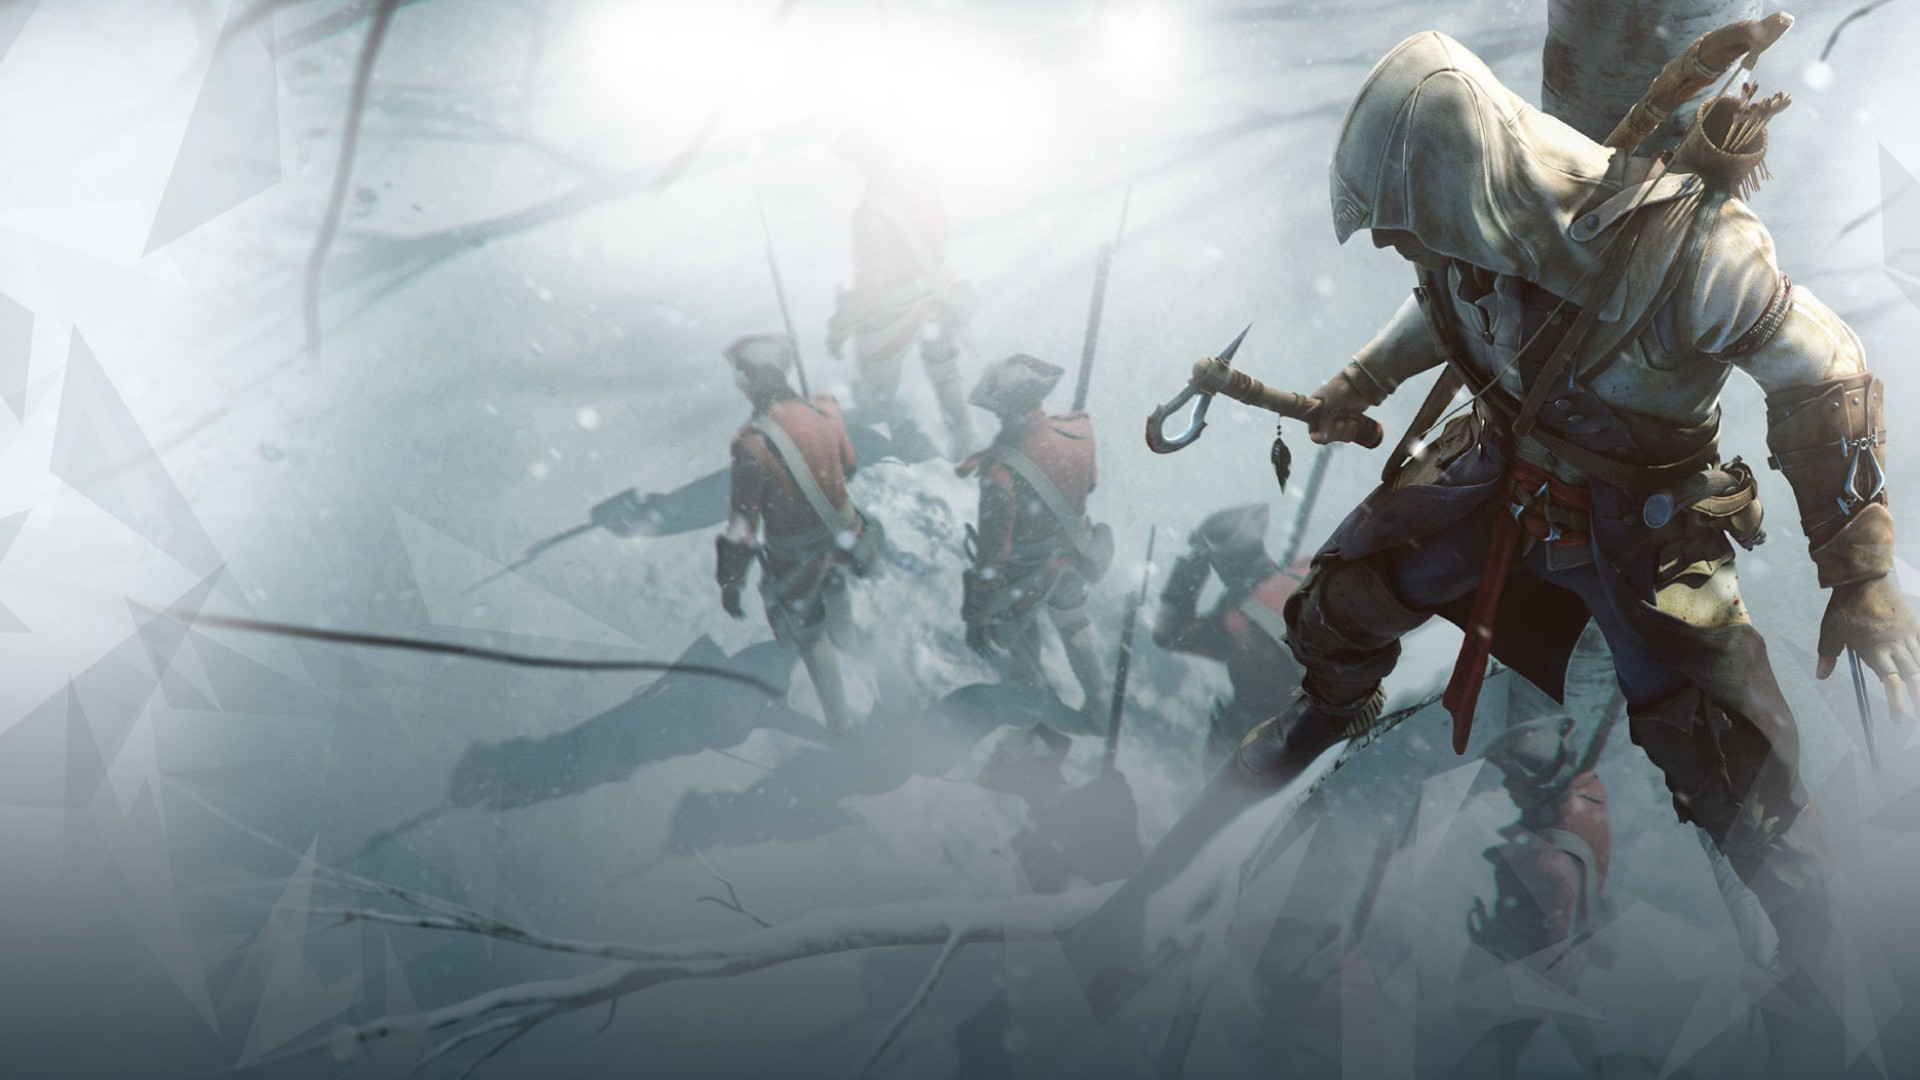 3.5 Million Sales for Assassin's Creed III